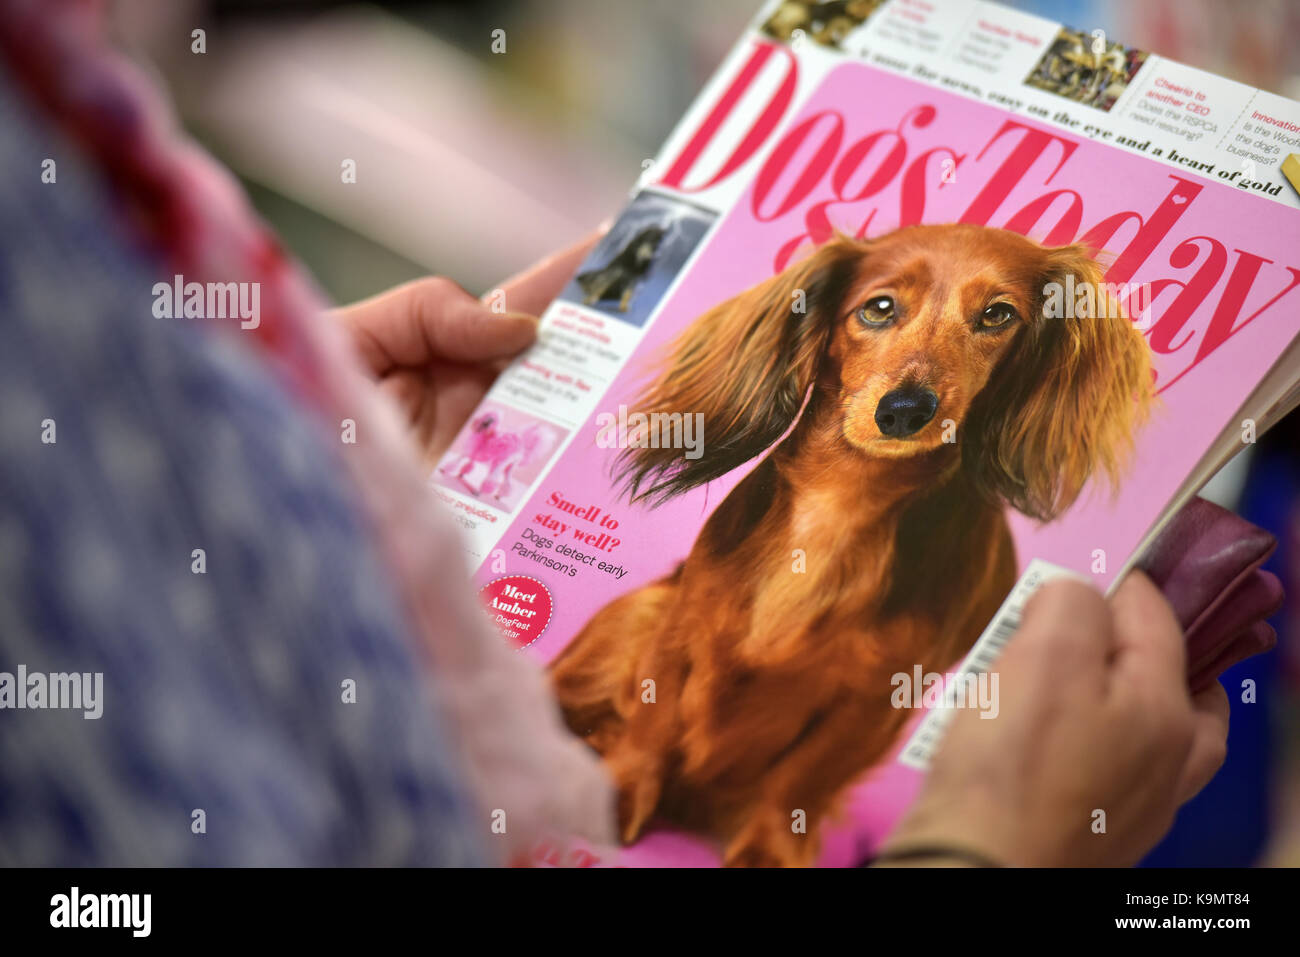 a lady or woman reading a dogs or pets magazine in a newsagents shop dogs today magazine and choosing a periodical - Stock Image